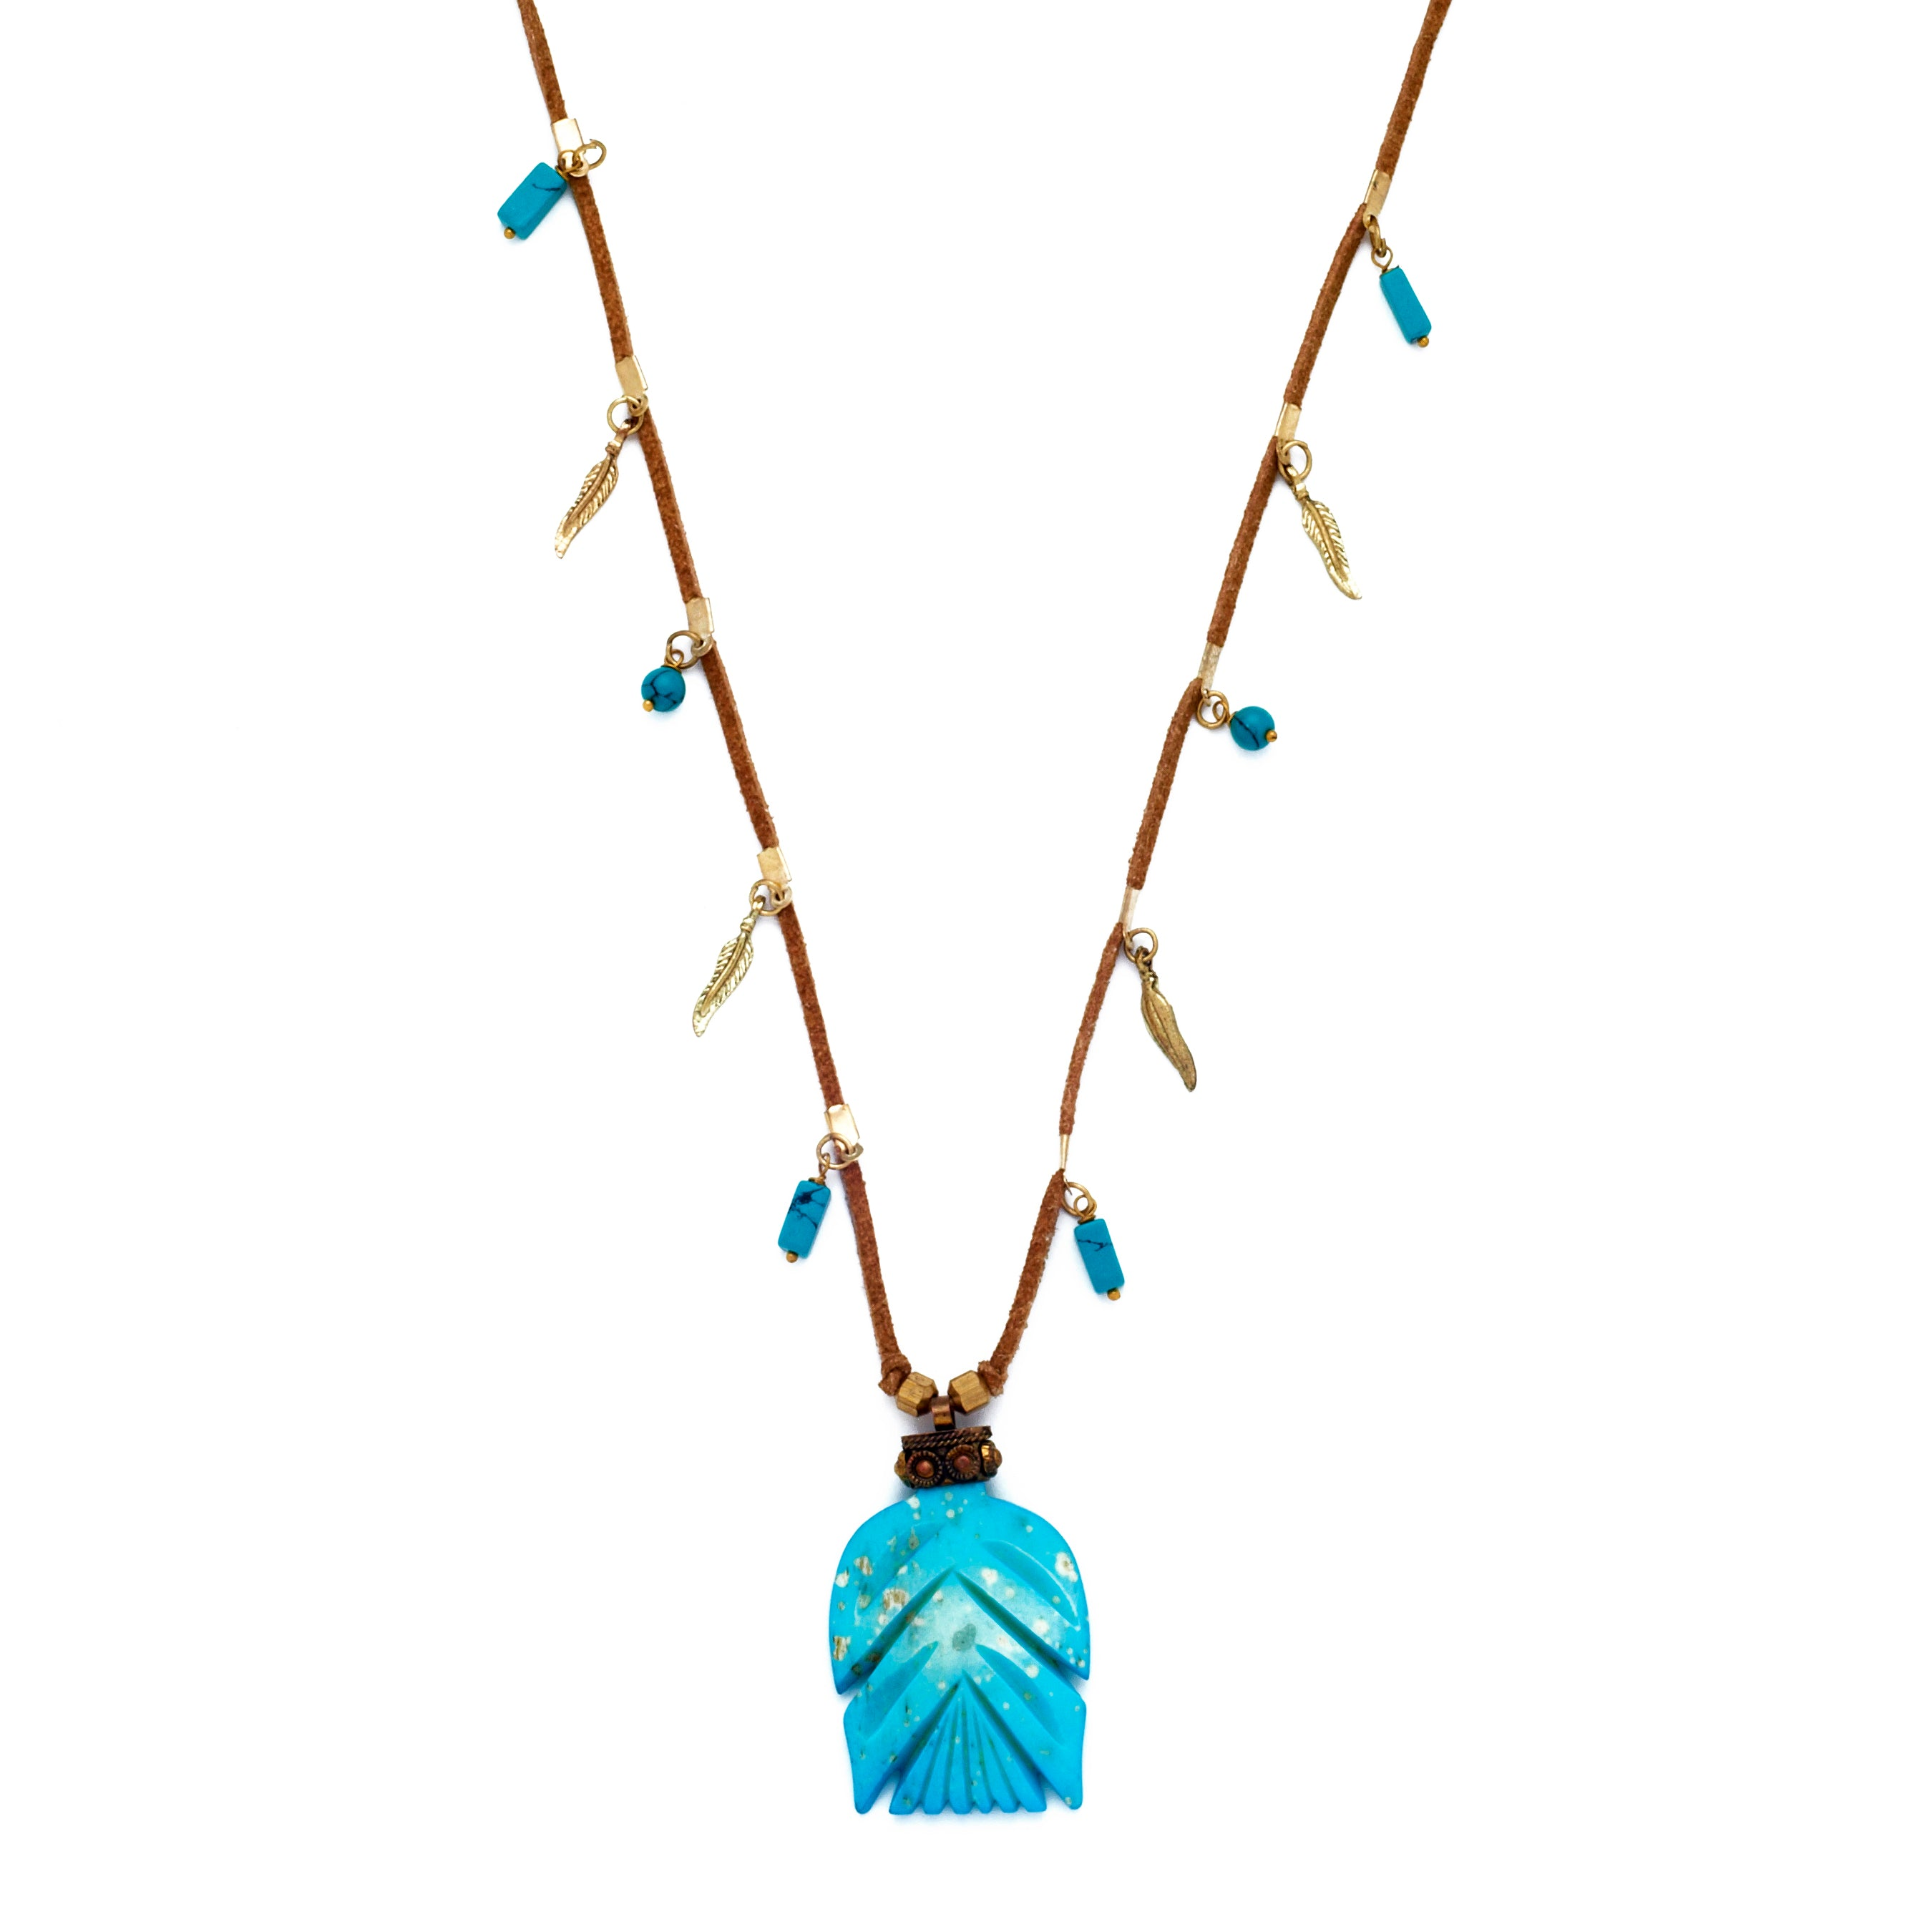 Suede & Turquoise Pendant Necklace